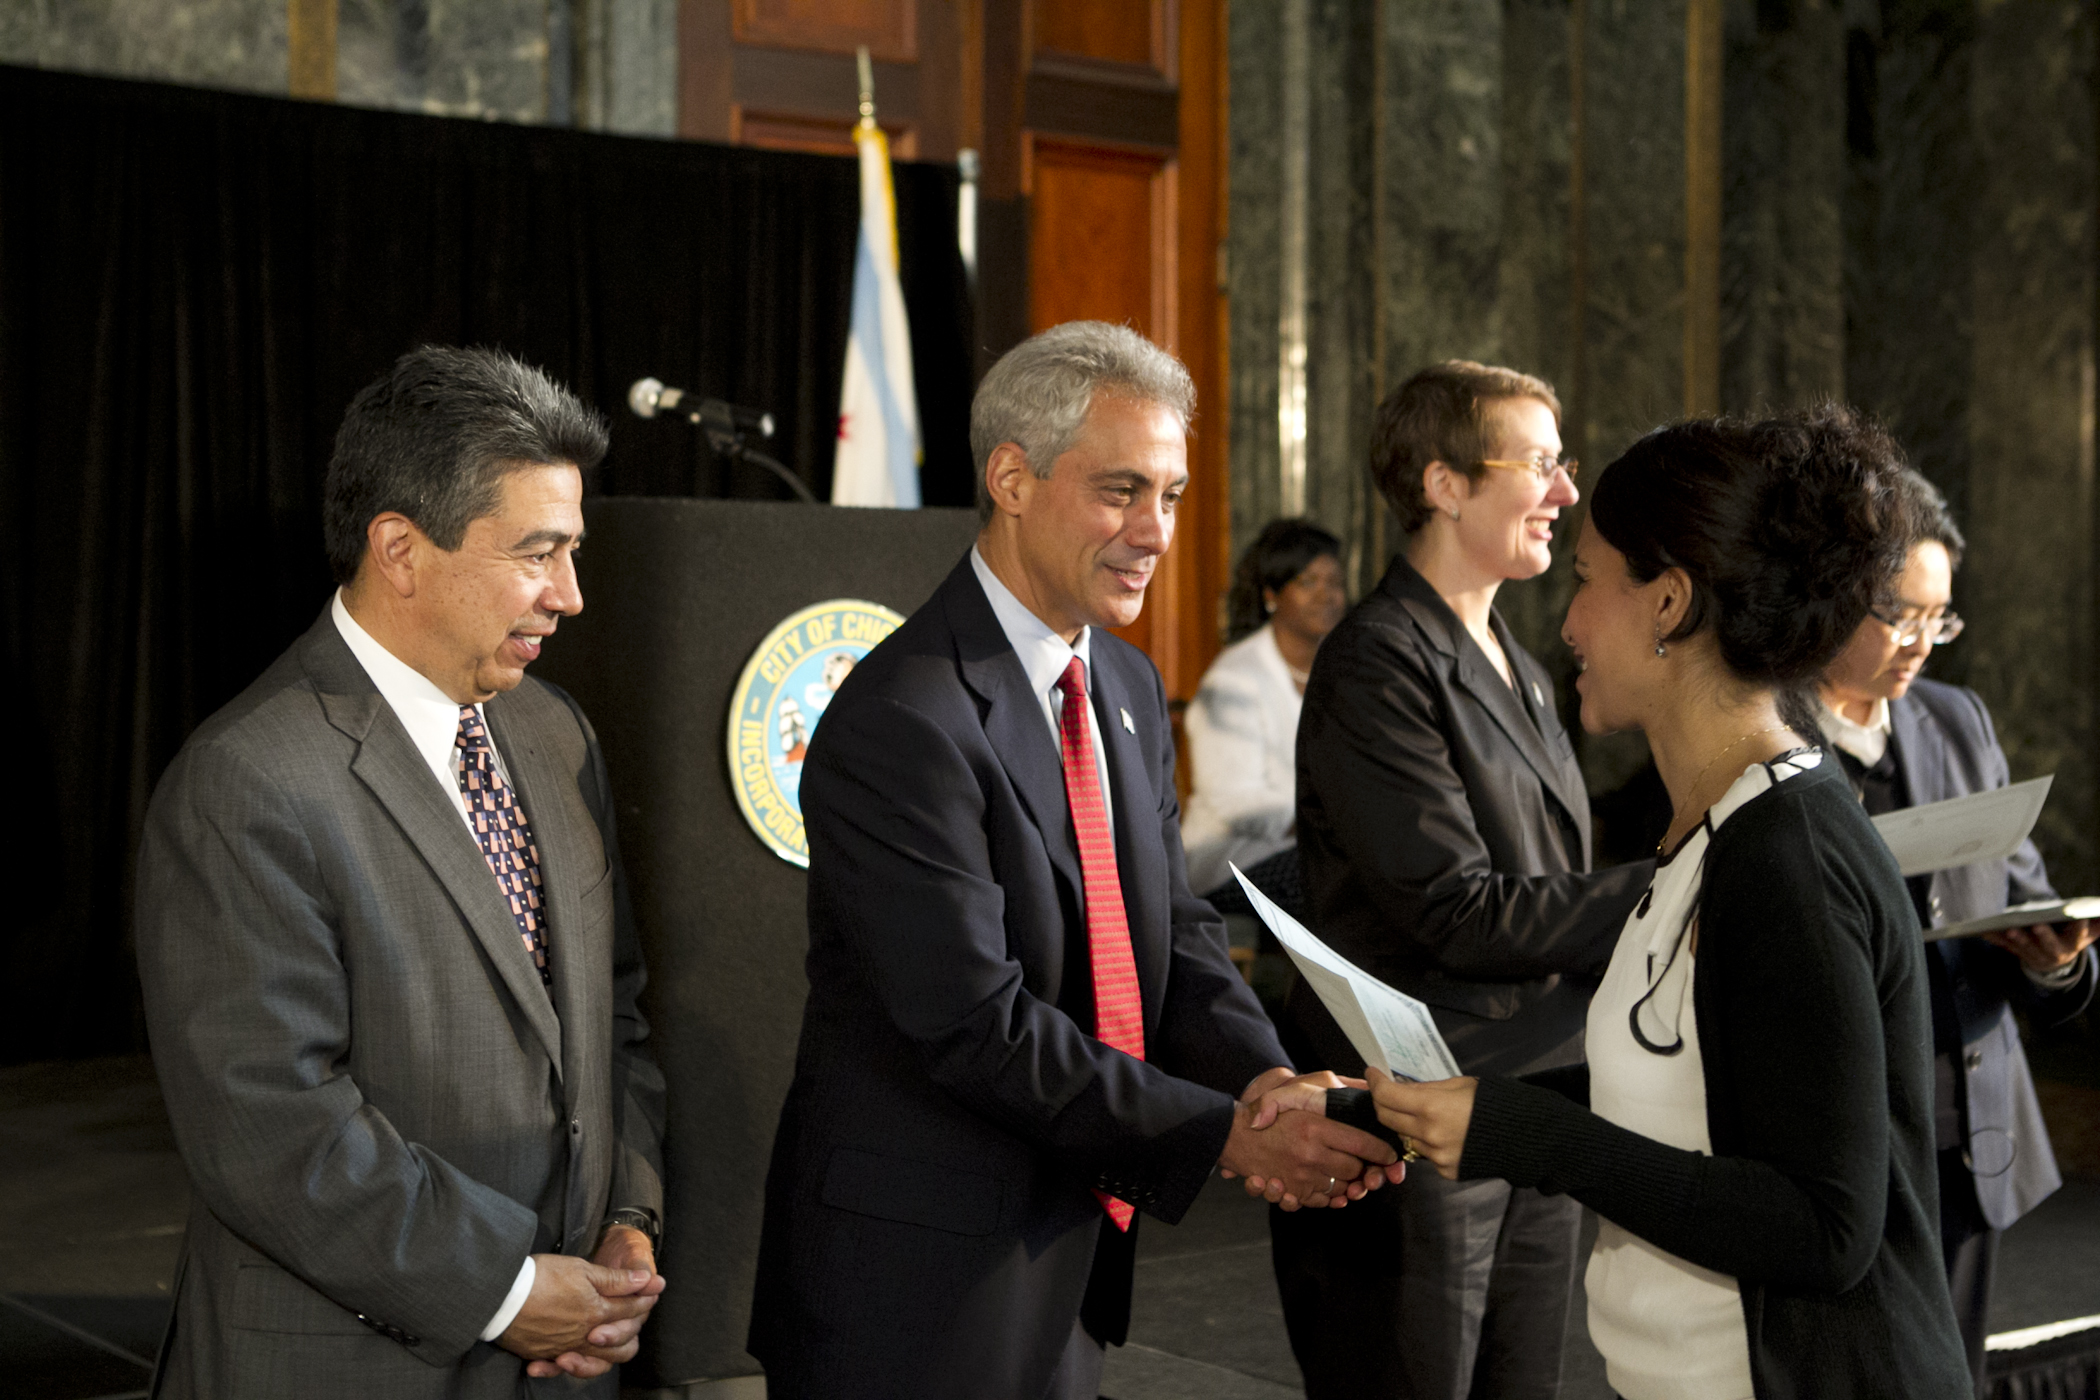 Mayor Emanuel congratulates newly naturalized citizens representing 32 countries at the Chicago Cultural Center.